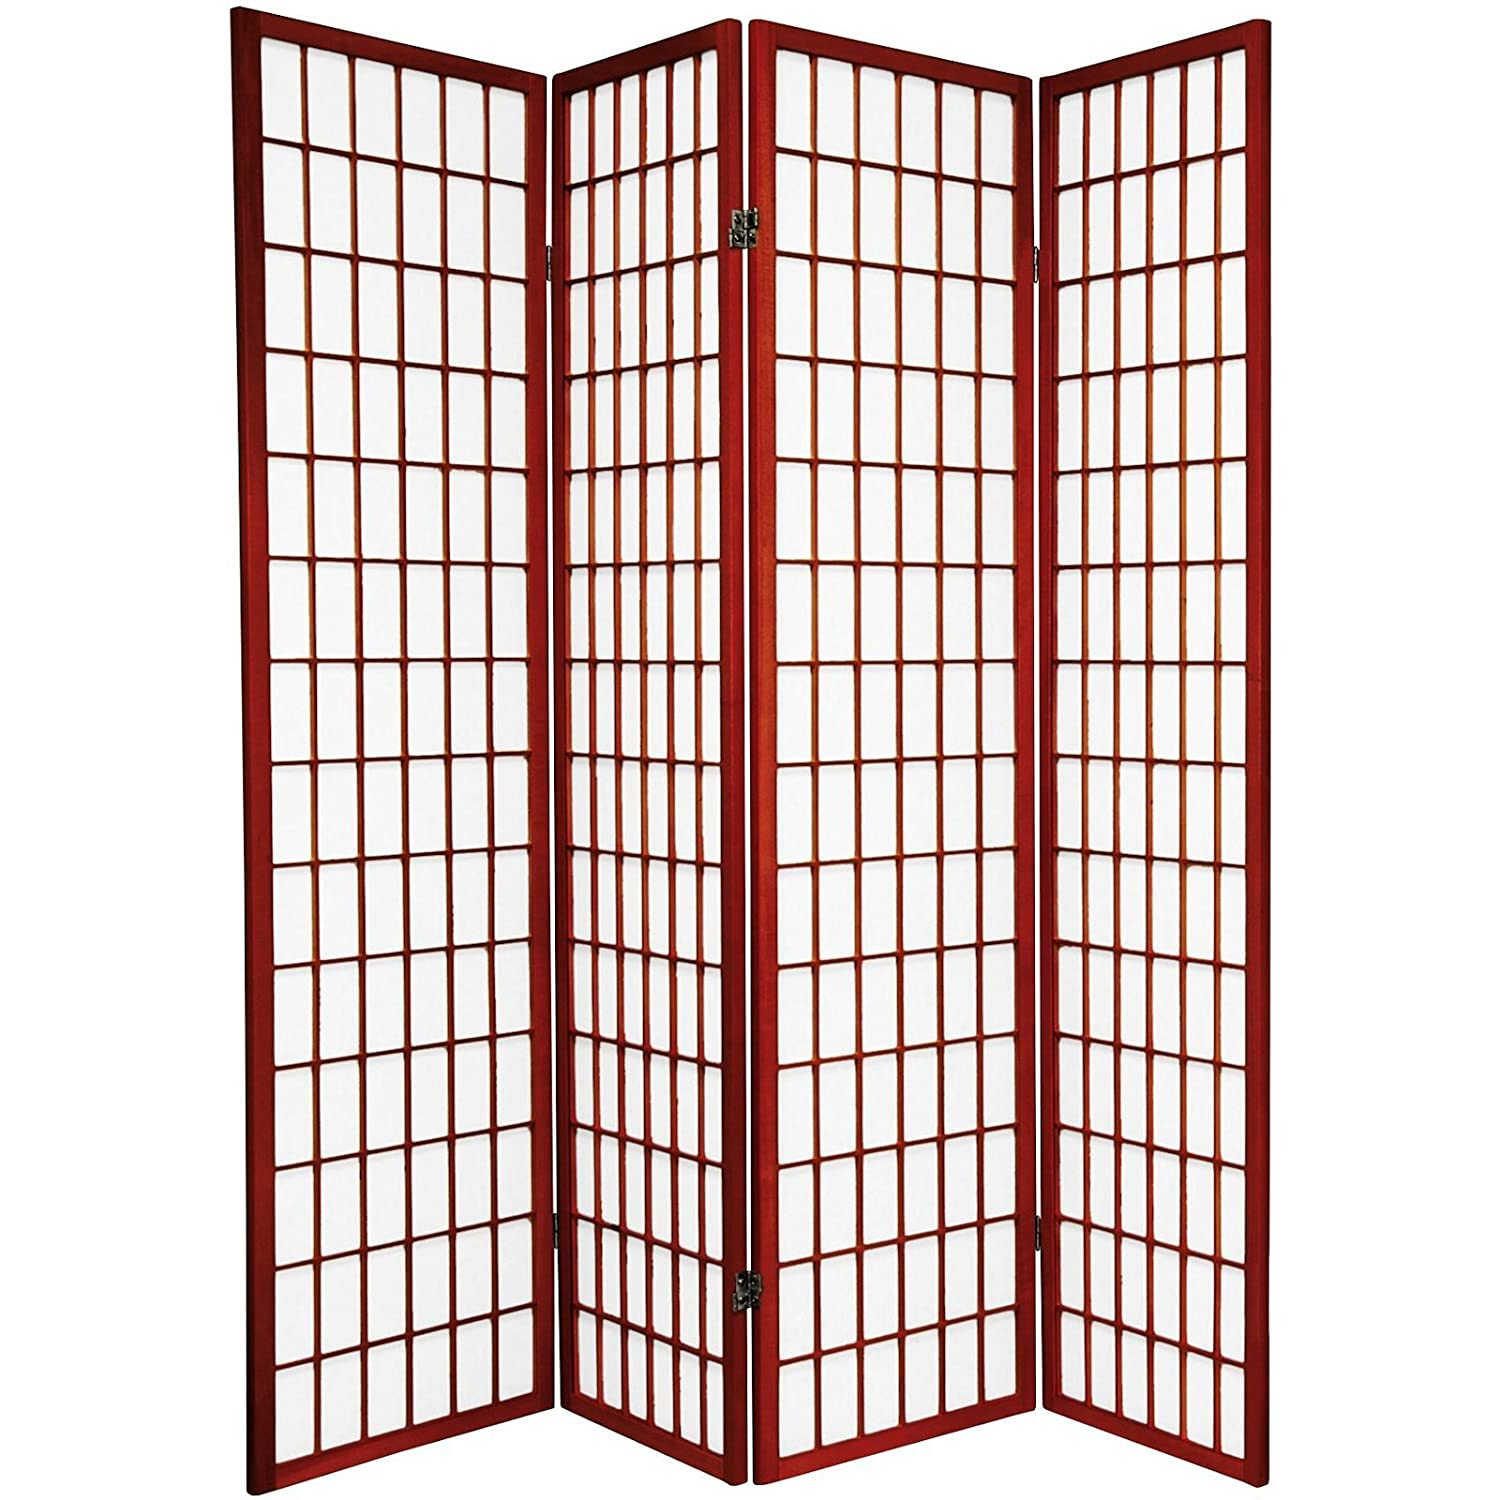 Amazoncom Legacy Decor 4 Panel Shoji Screen Room Divider Cherry